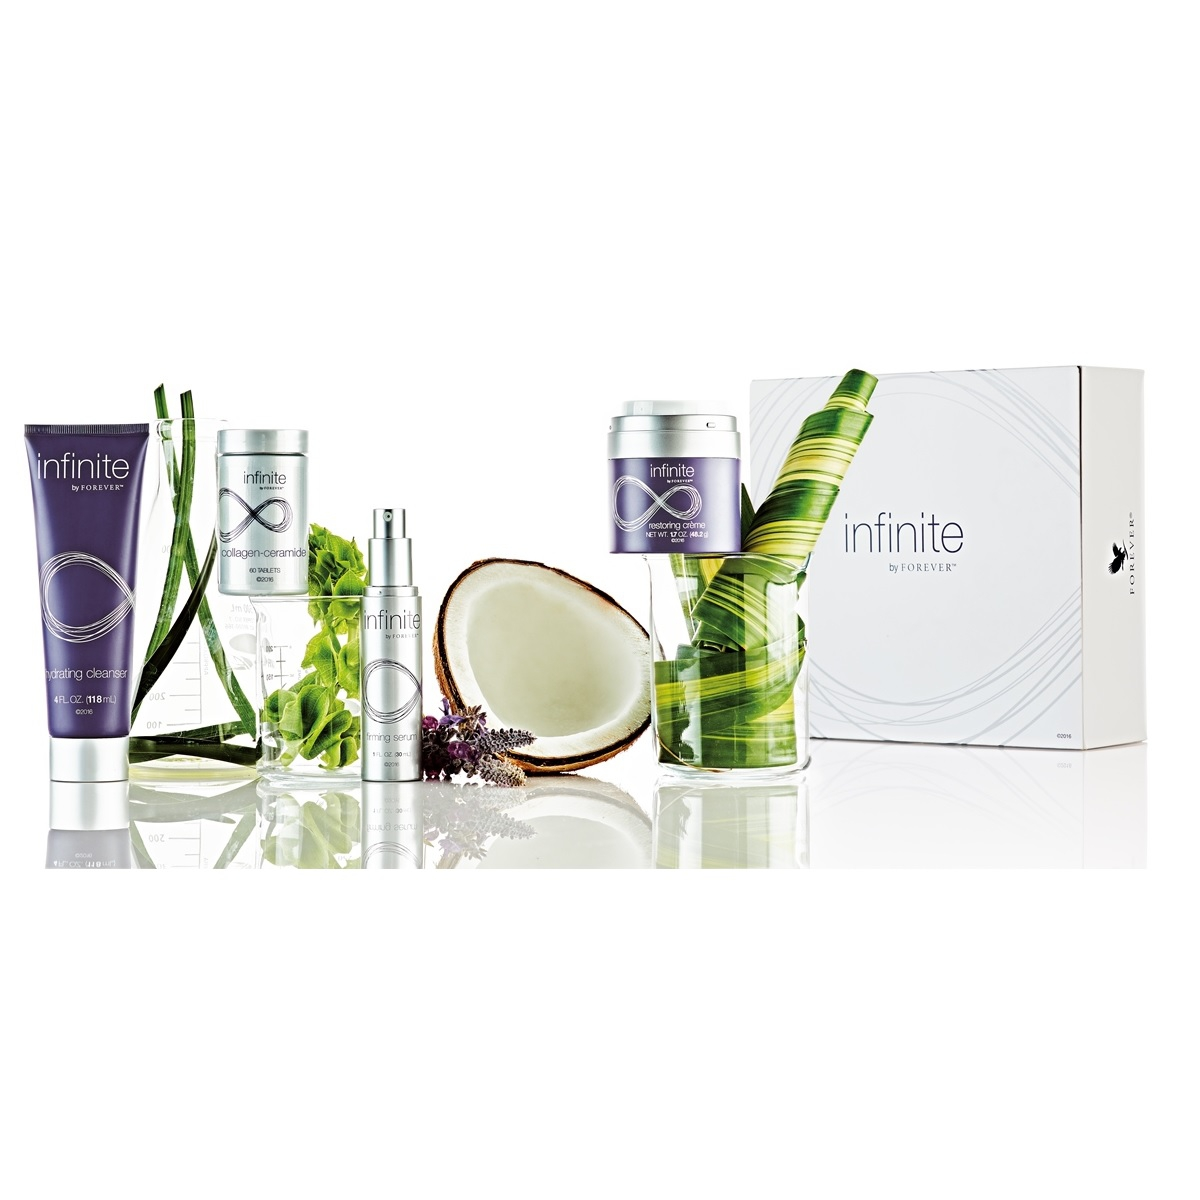 Infinite Skin Care Kit